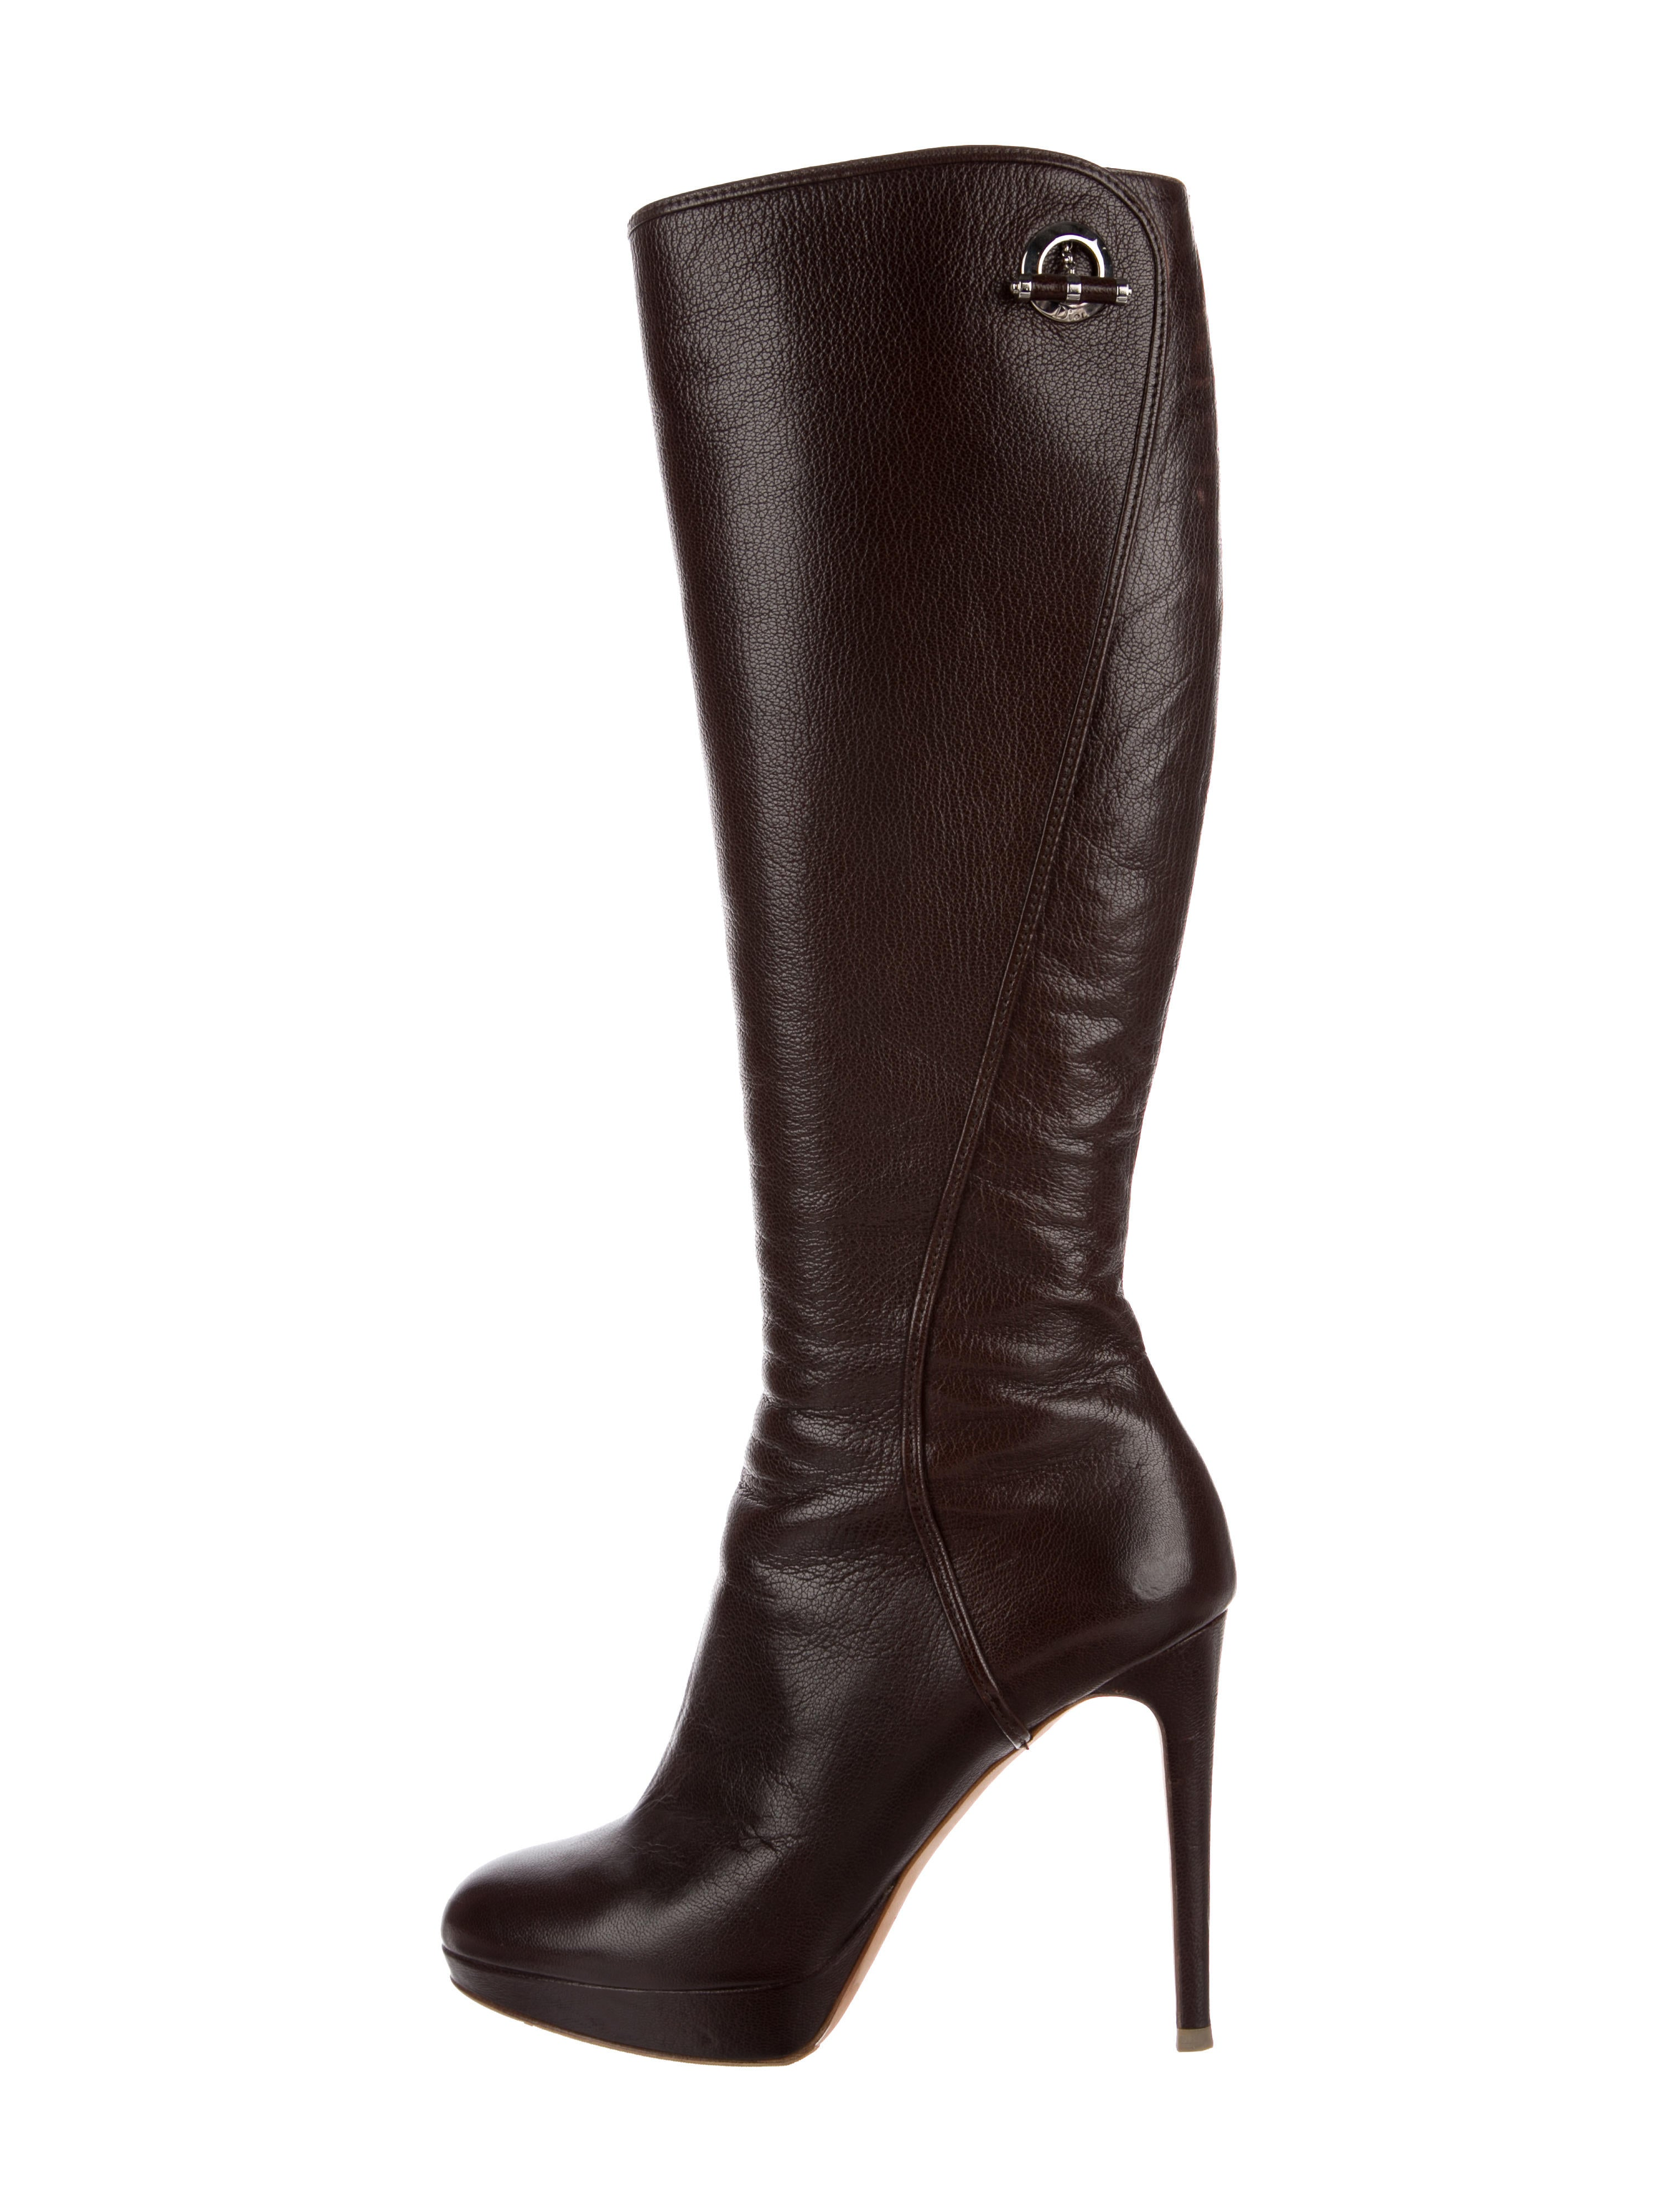 discount wholesale Christian Dior Knee-High Platform Boots cheap online with paypal for sale discount affordable clearance many kinds of KpRMM3mjB